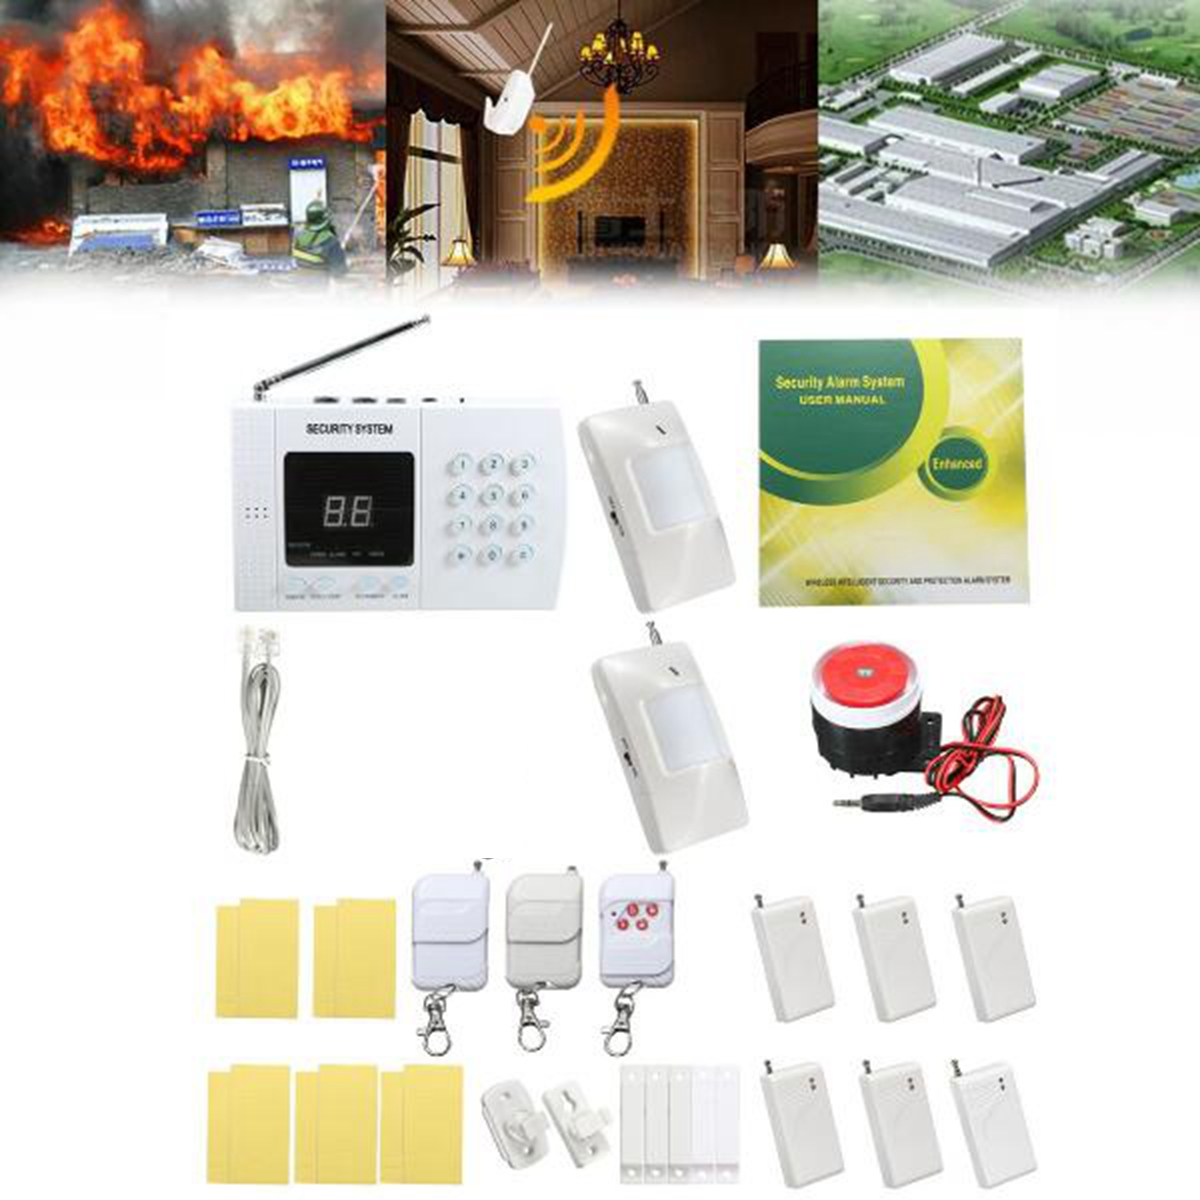 500ft Home Security Burglar Alarm System Auto Dialing Dialer Zones Wireless PIR Prevent Theft Detect Gas Leakage Wall Mount zones wireless pir home security burglar alarm system auto dialer with wireless door sensors detector new high quality